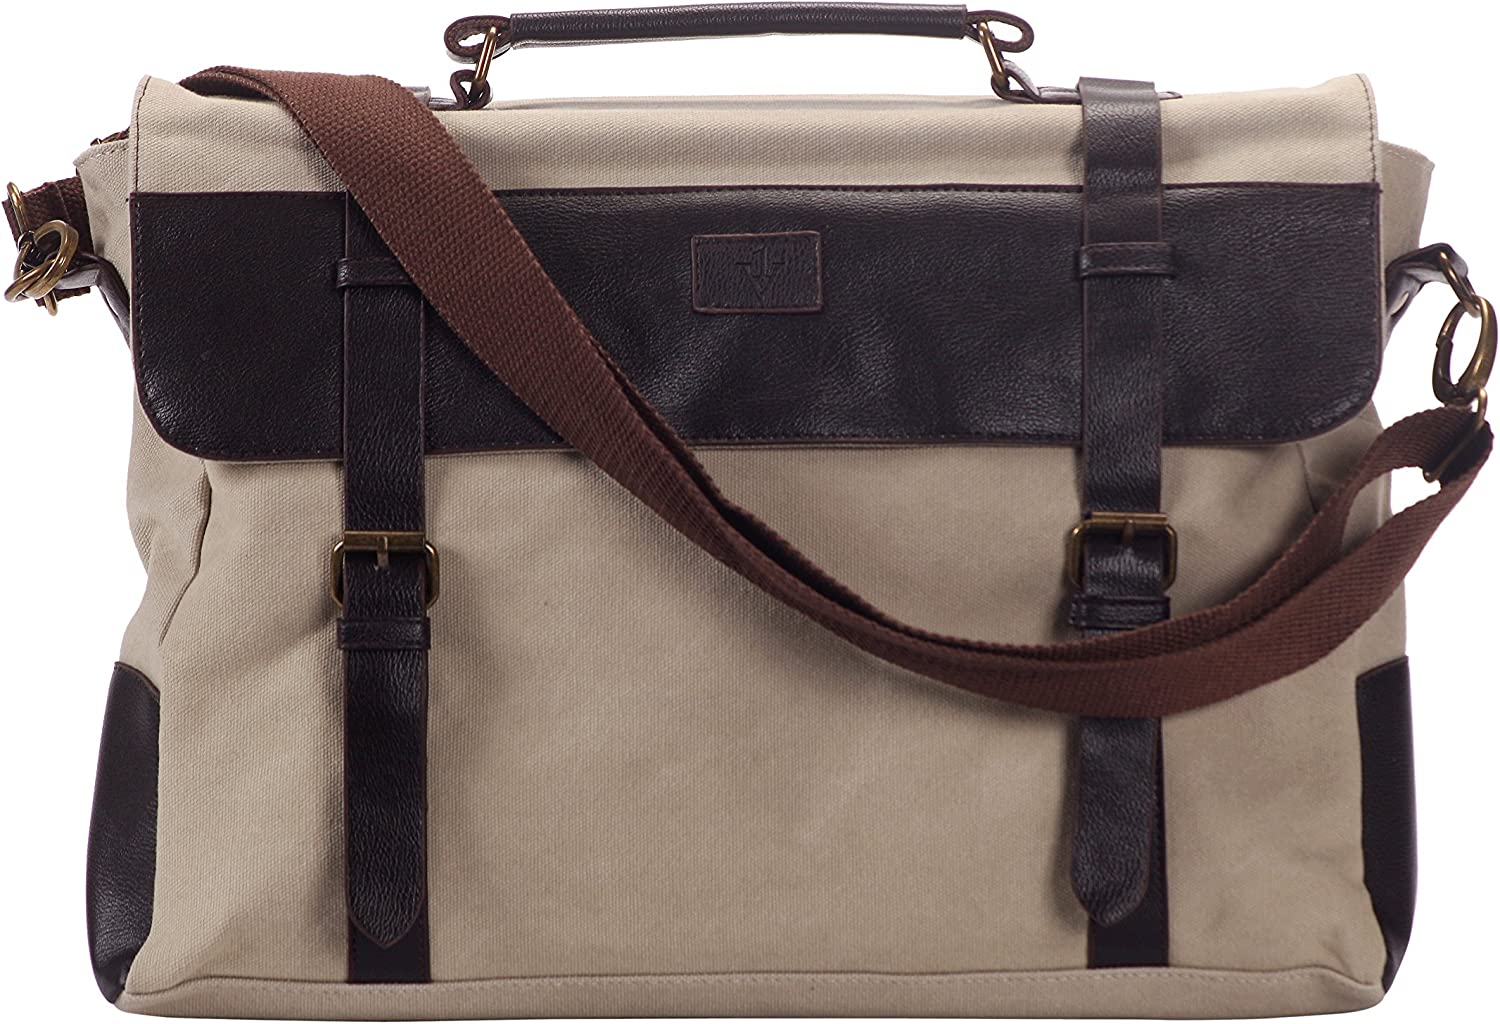 The Adare Charger Messenger Bag